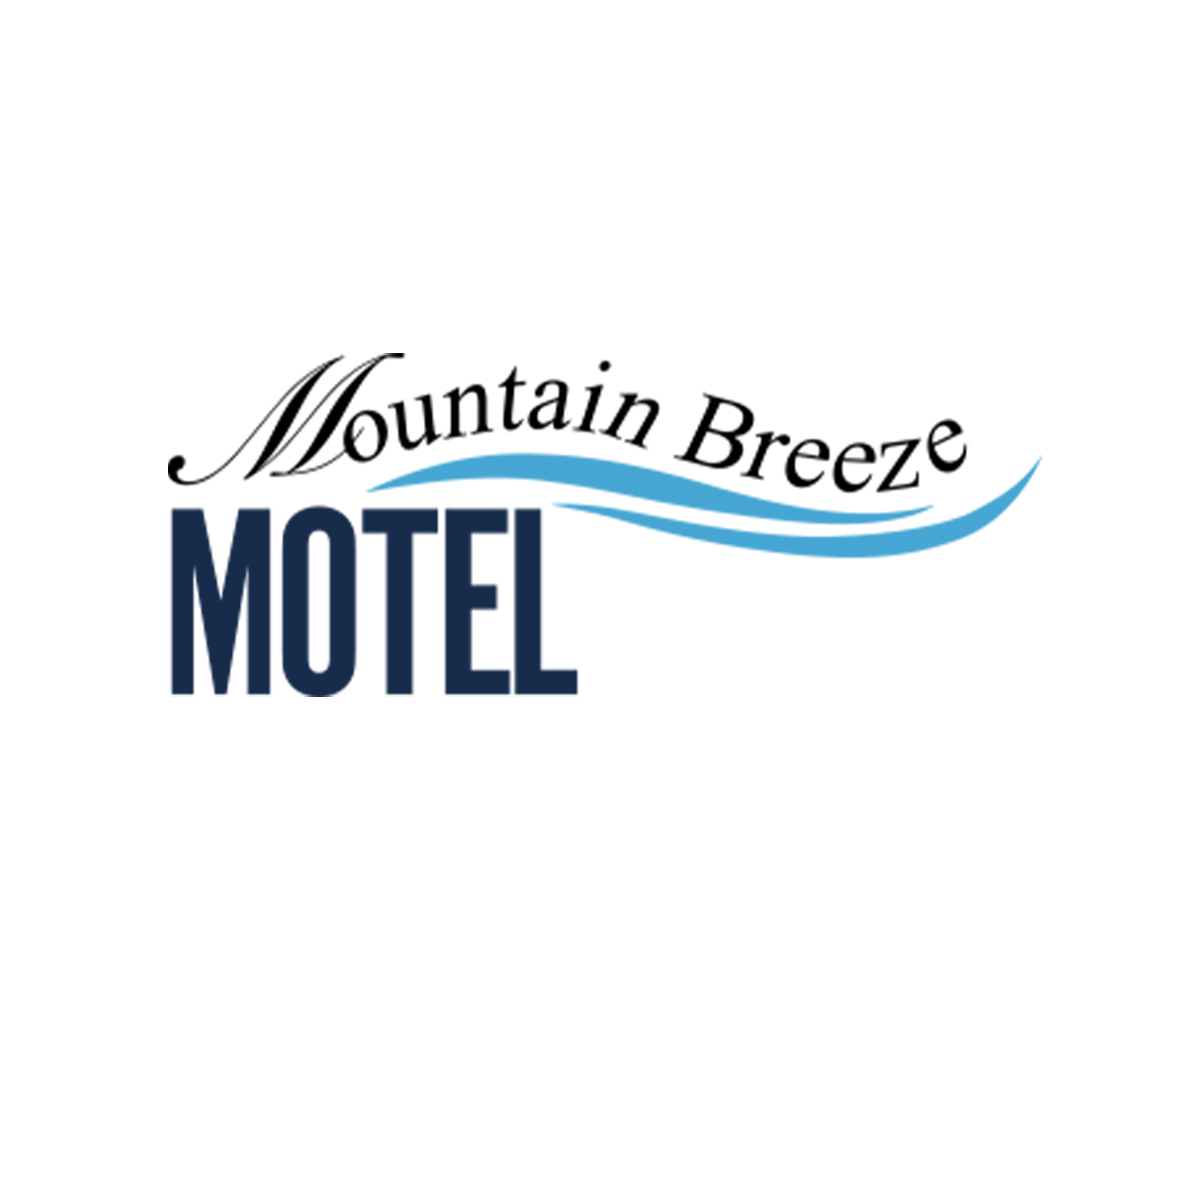 Mountain Breeze Motel 2019 SMCB Logo.jpg